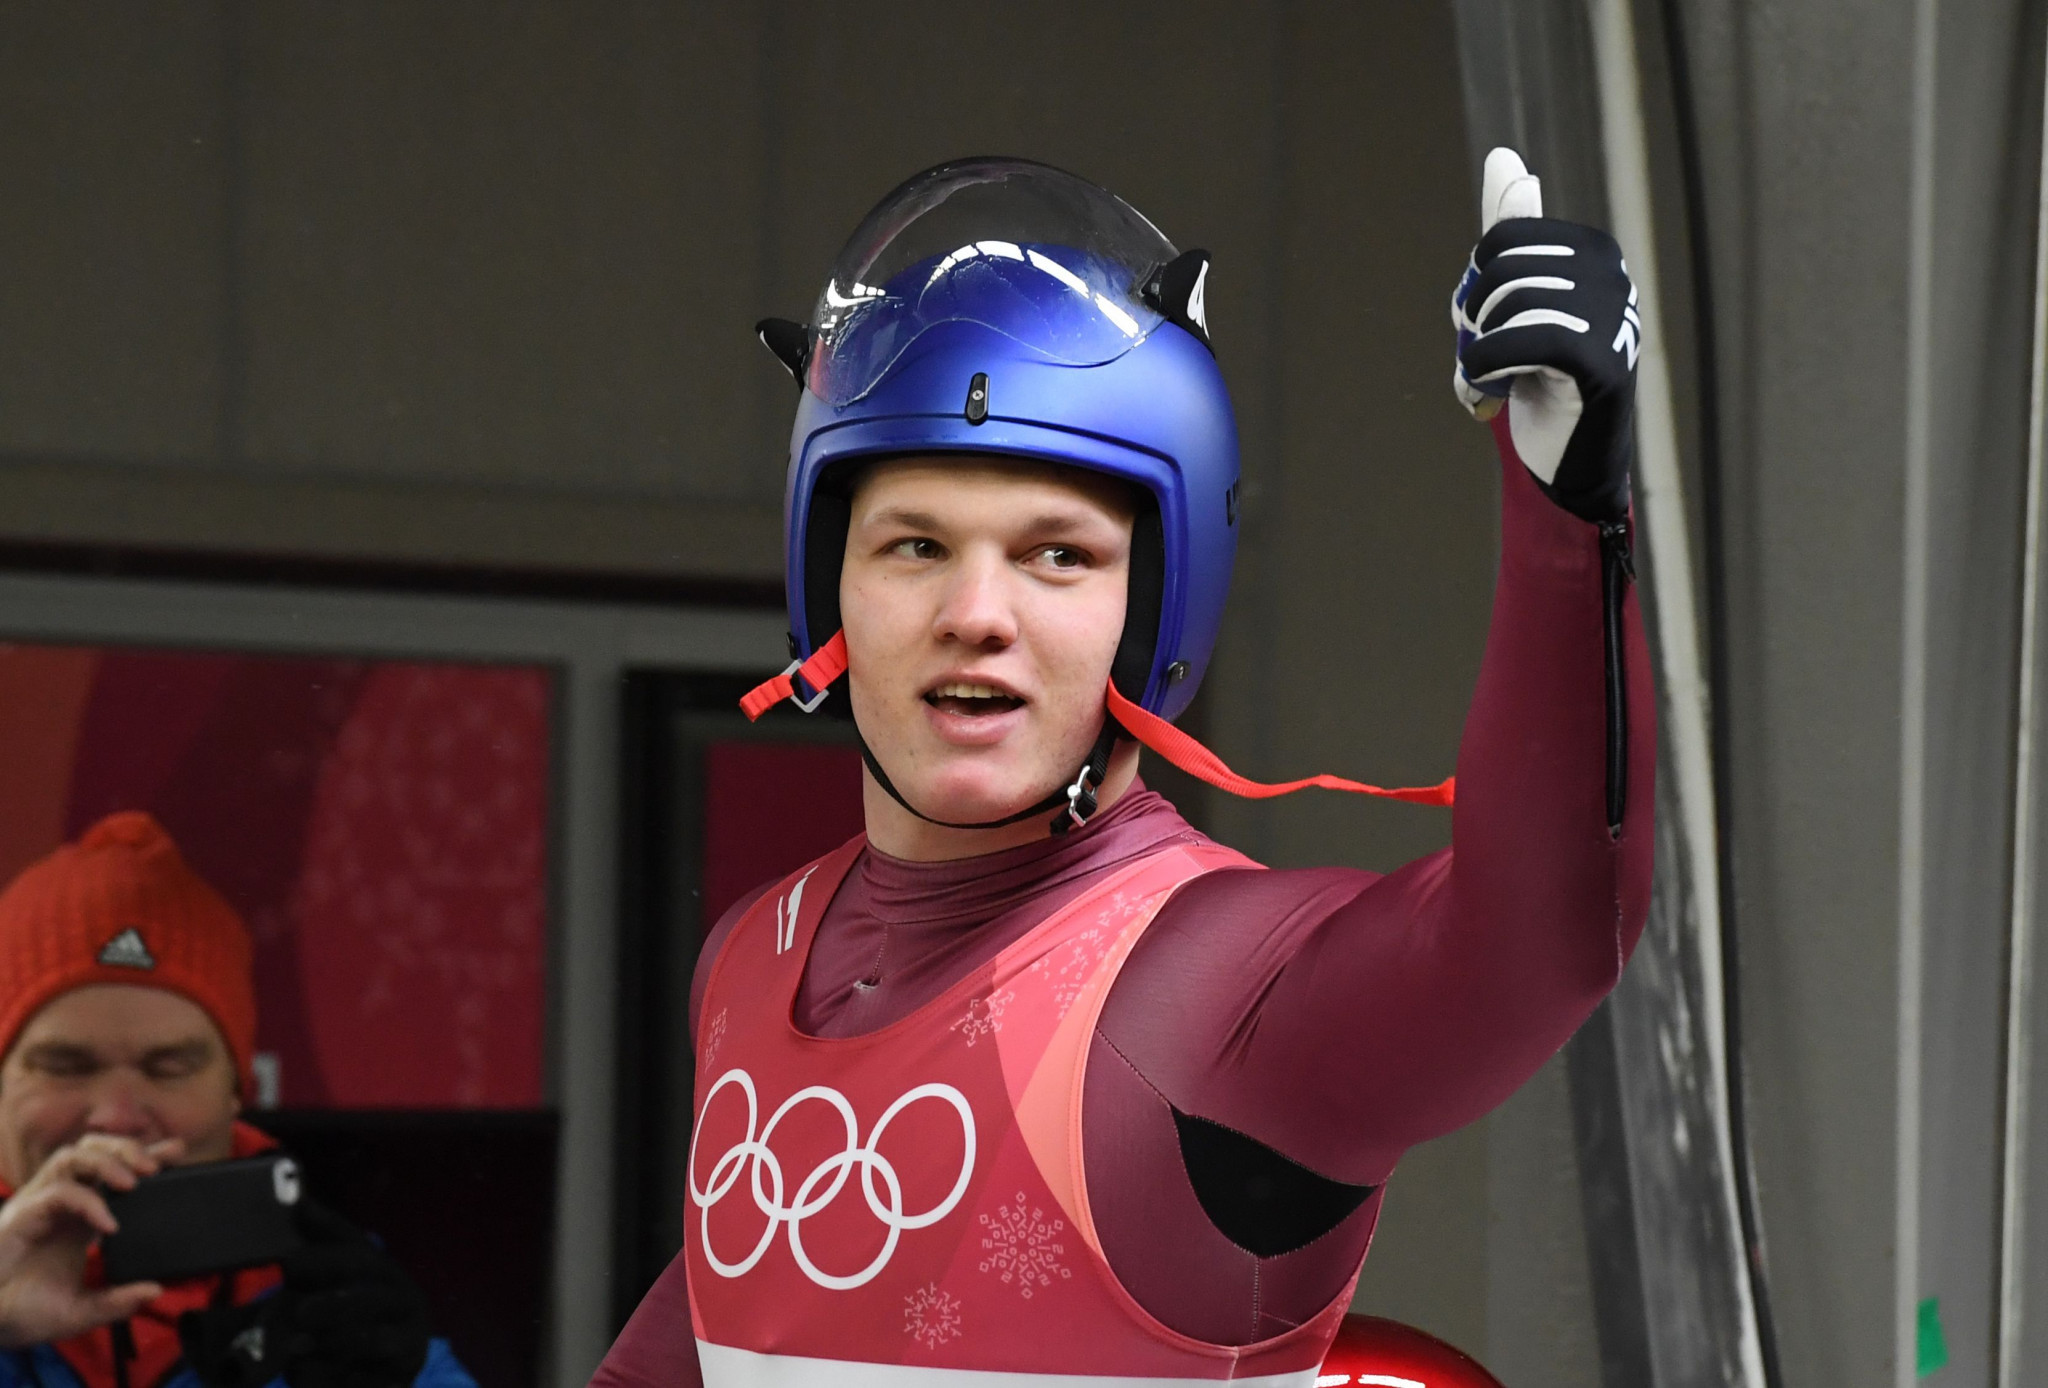 Russians Repilov and Ivanova looking good for fourth FIL Luge World Cup of season